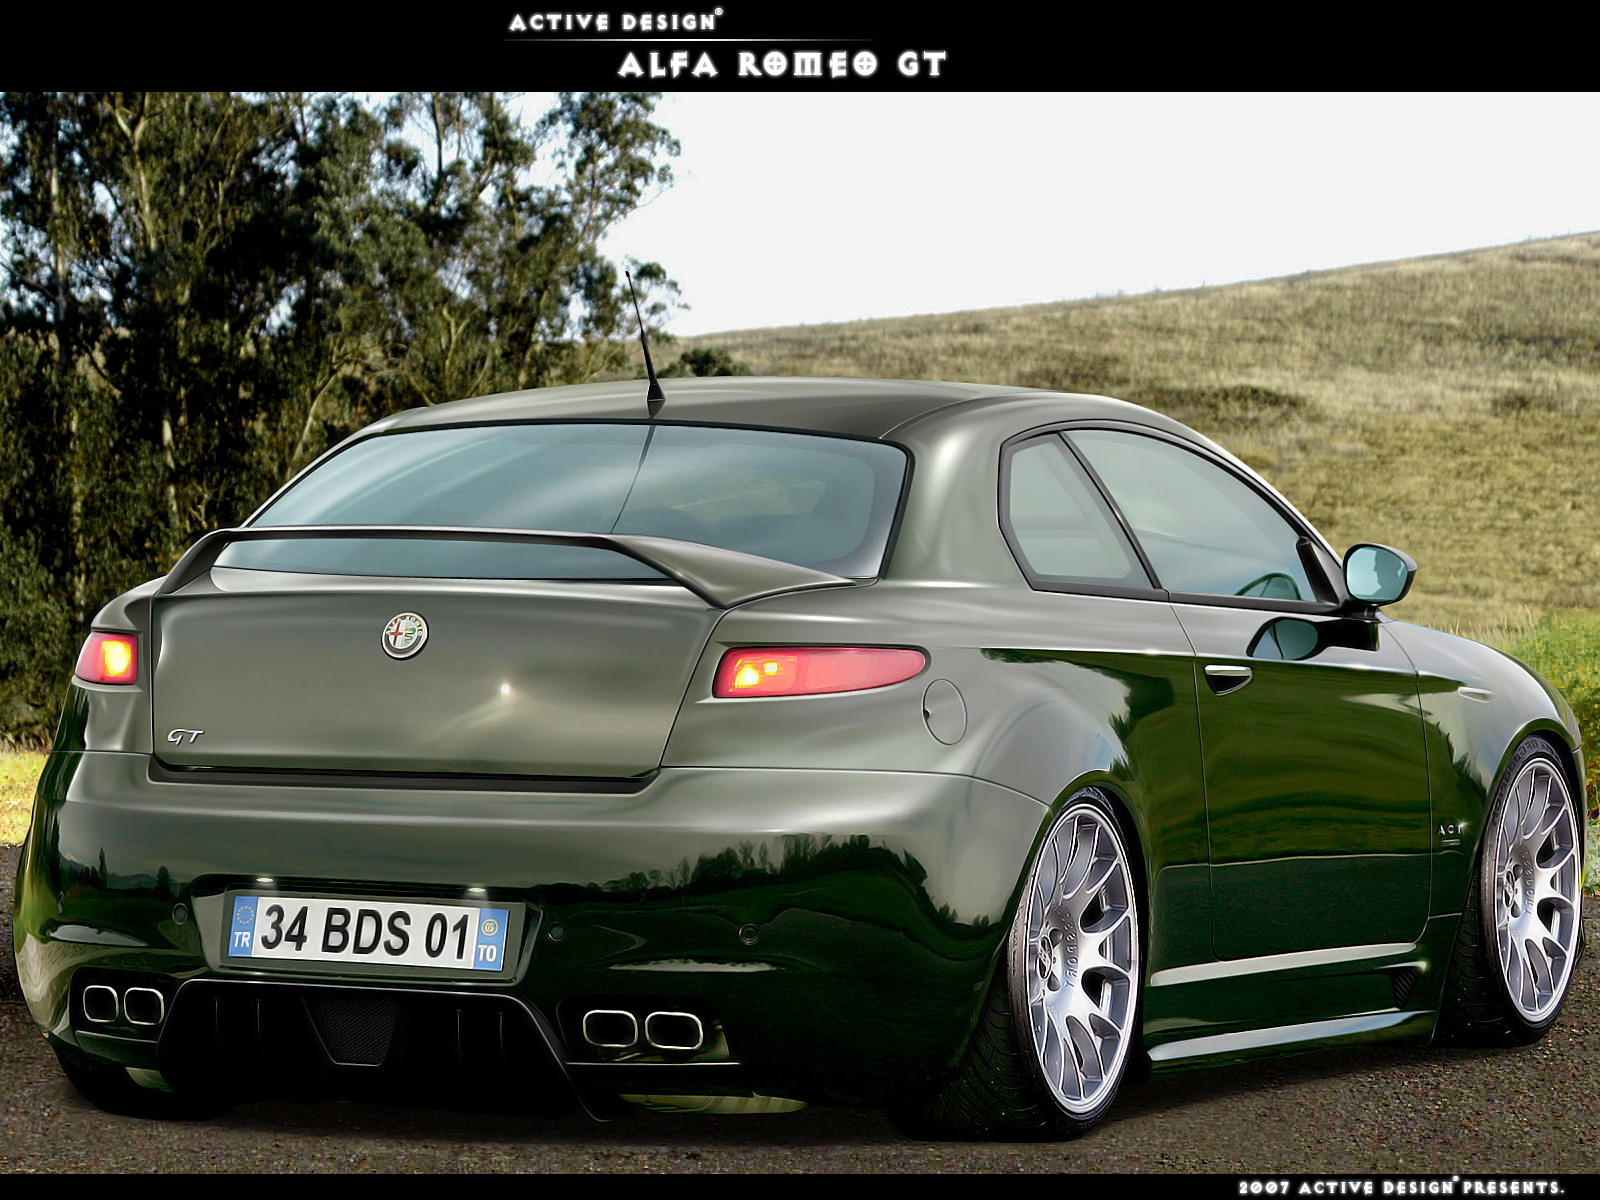 Pictures of alfa romeo gt